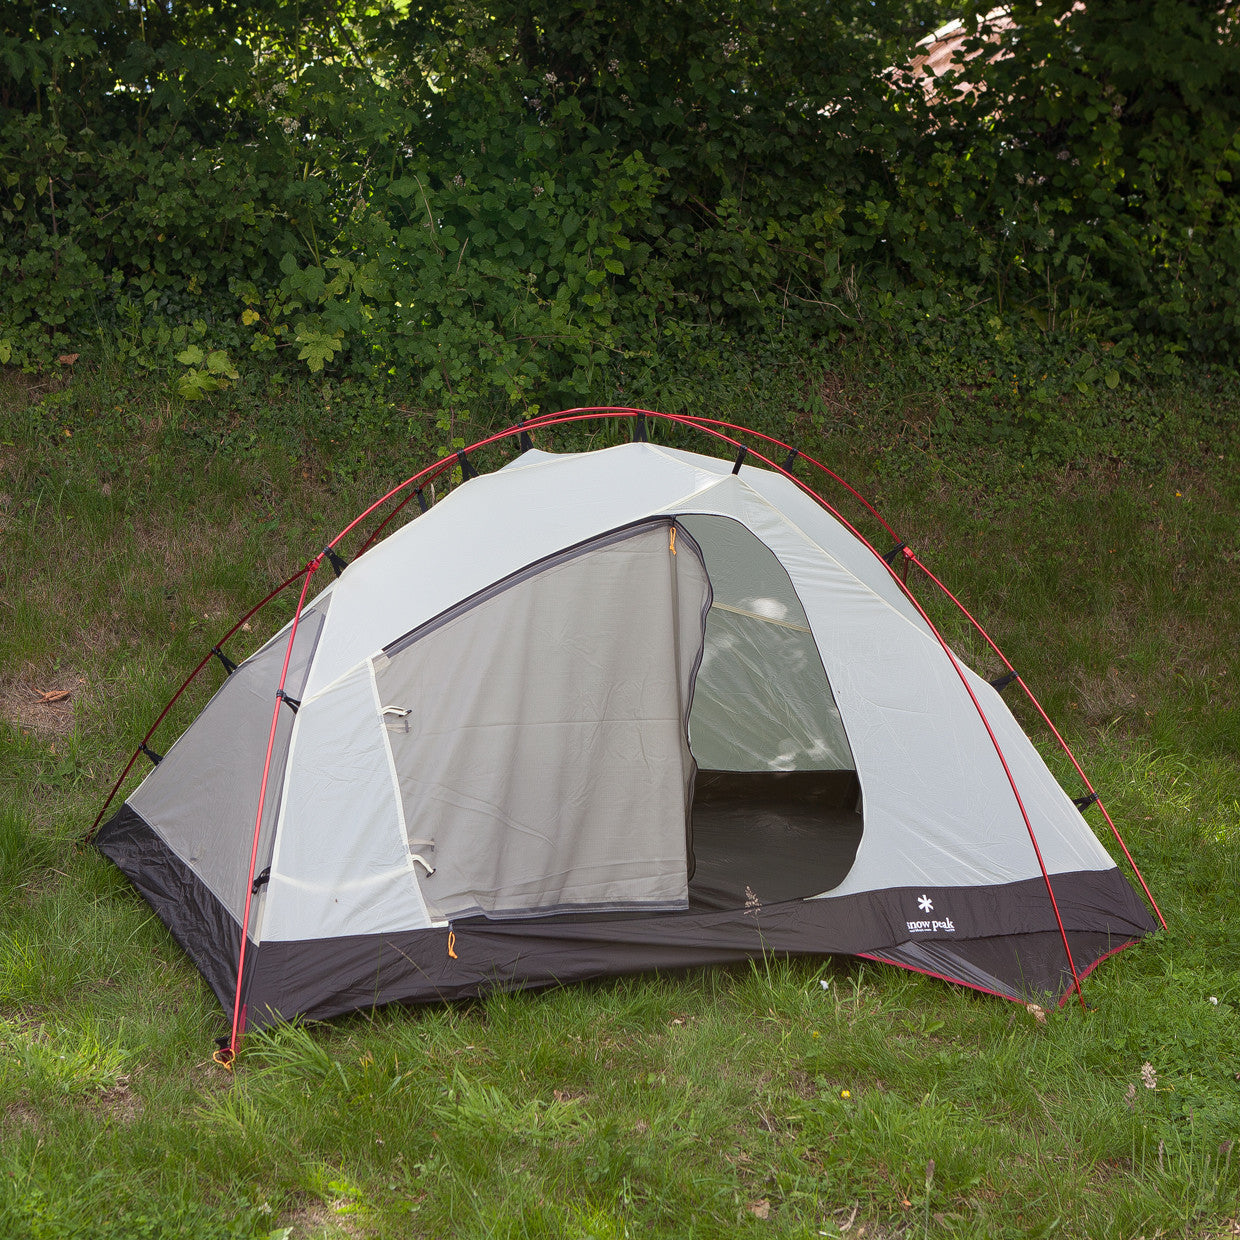 ... Snow Peak Landbreeze Duo Tent ... & Snow Peak Landbreeze Duo Tent | Flatspot